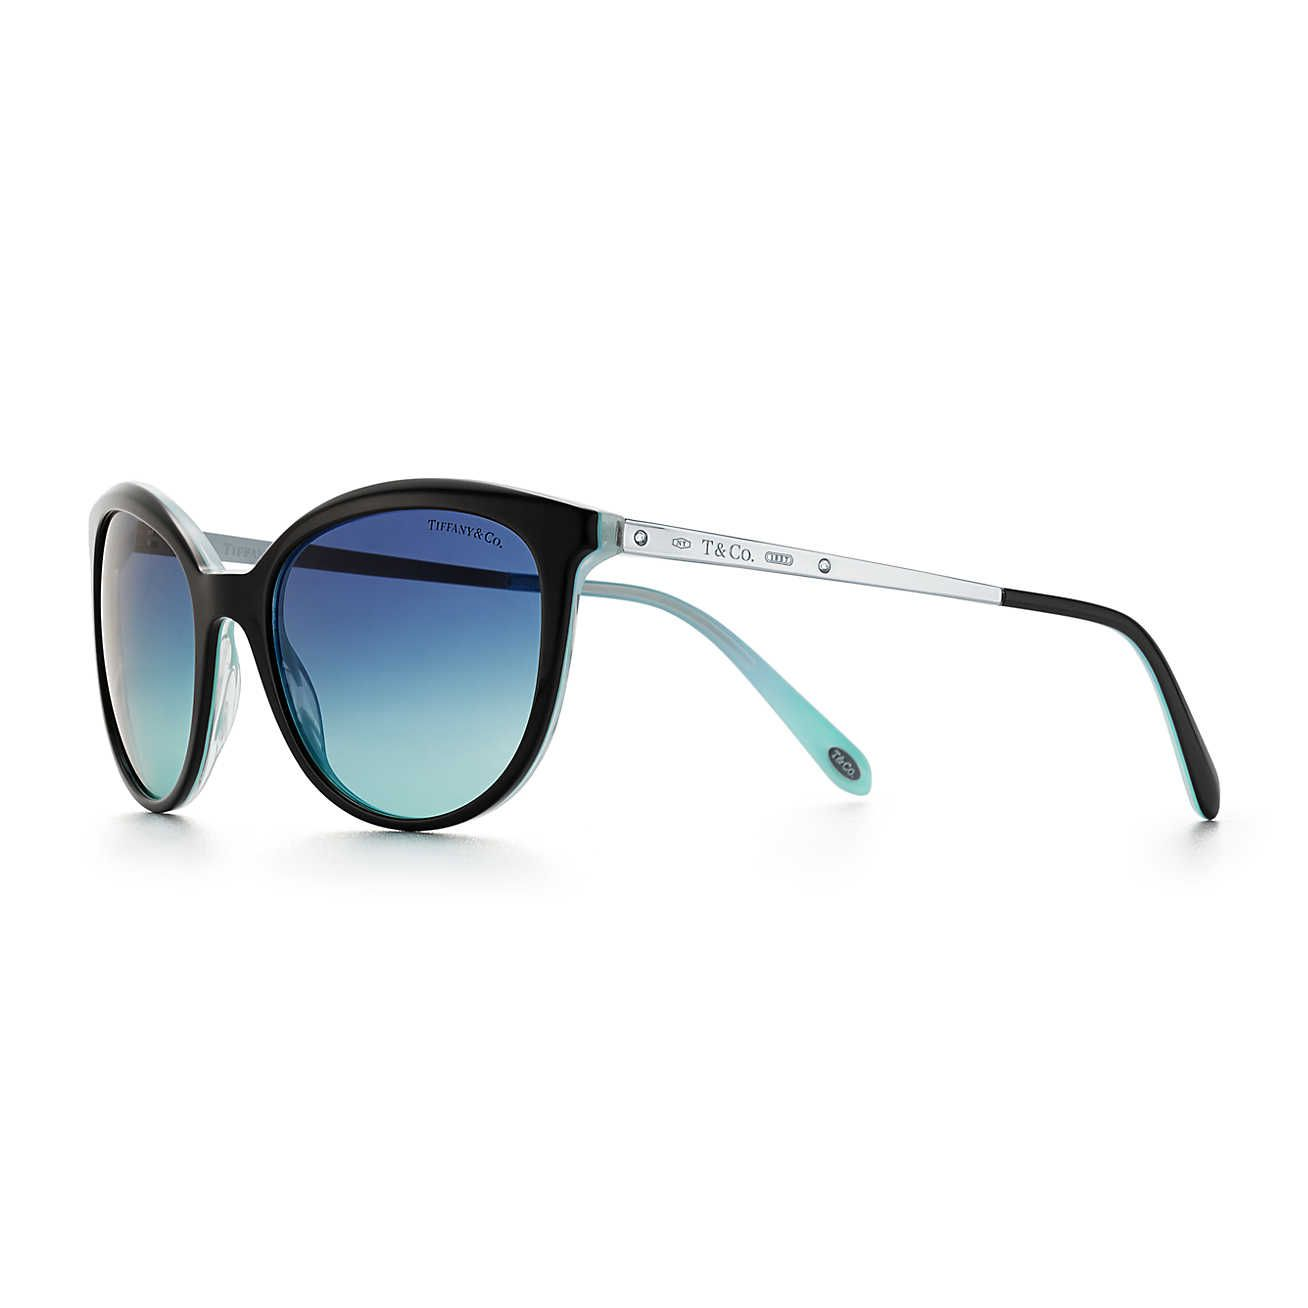 6c528ce30be0 Occhiali da sole Phantos Tiffany 1837™ in acetato colore nero e Tiffany  Blue®.